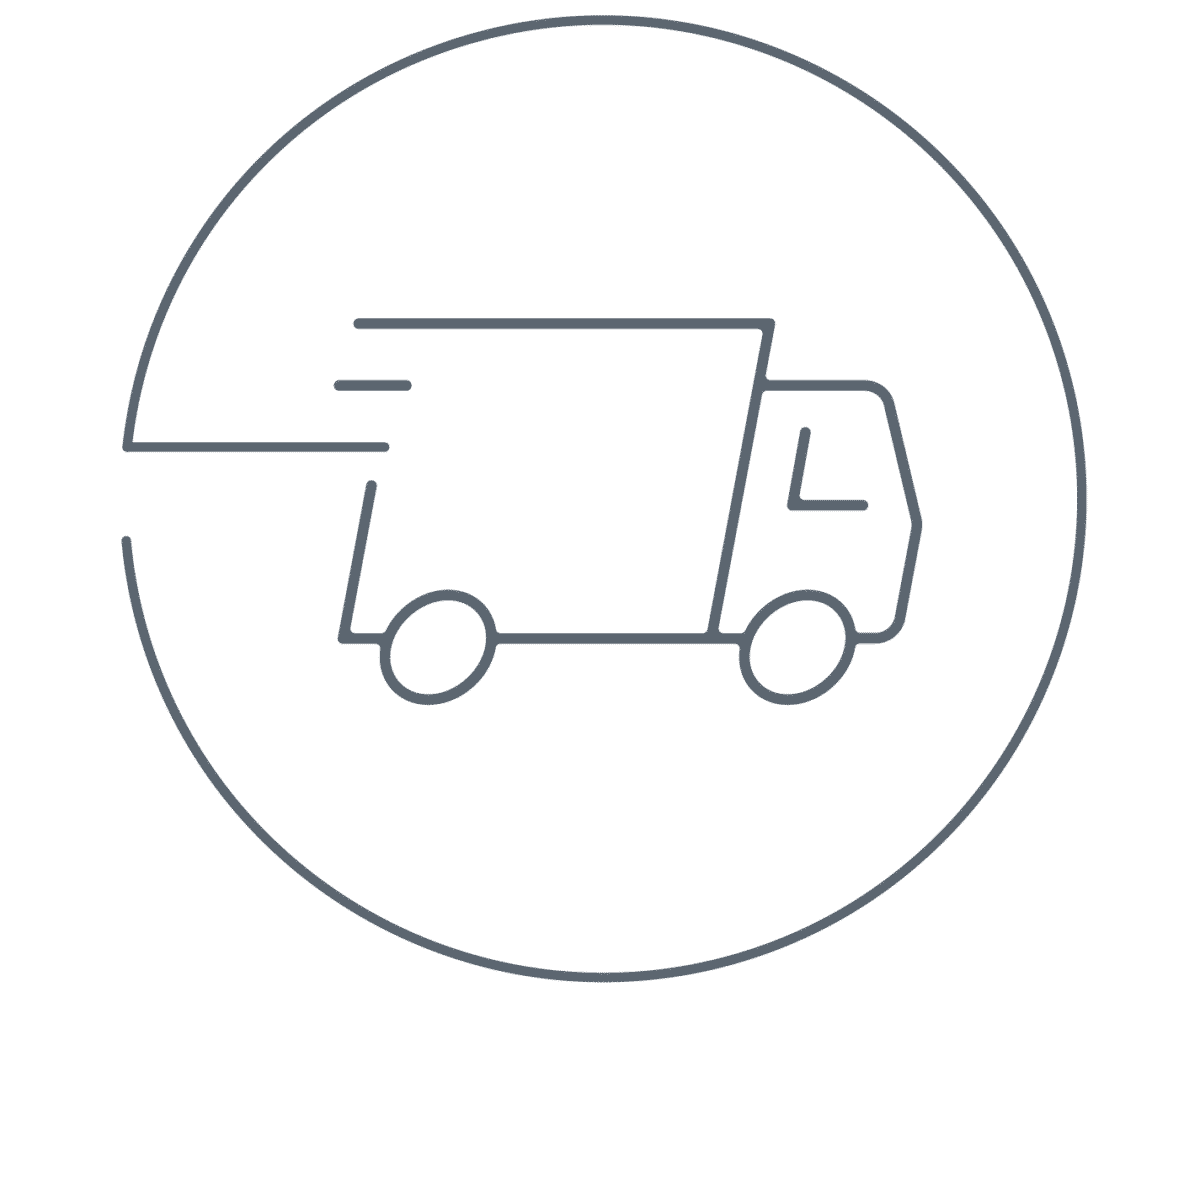 Cooper Complete Nutritional Supplements truck icon representing shipping promotion